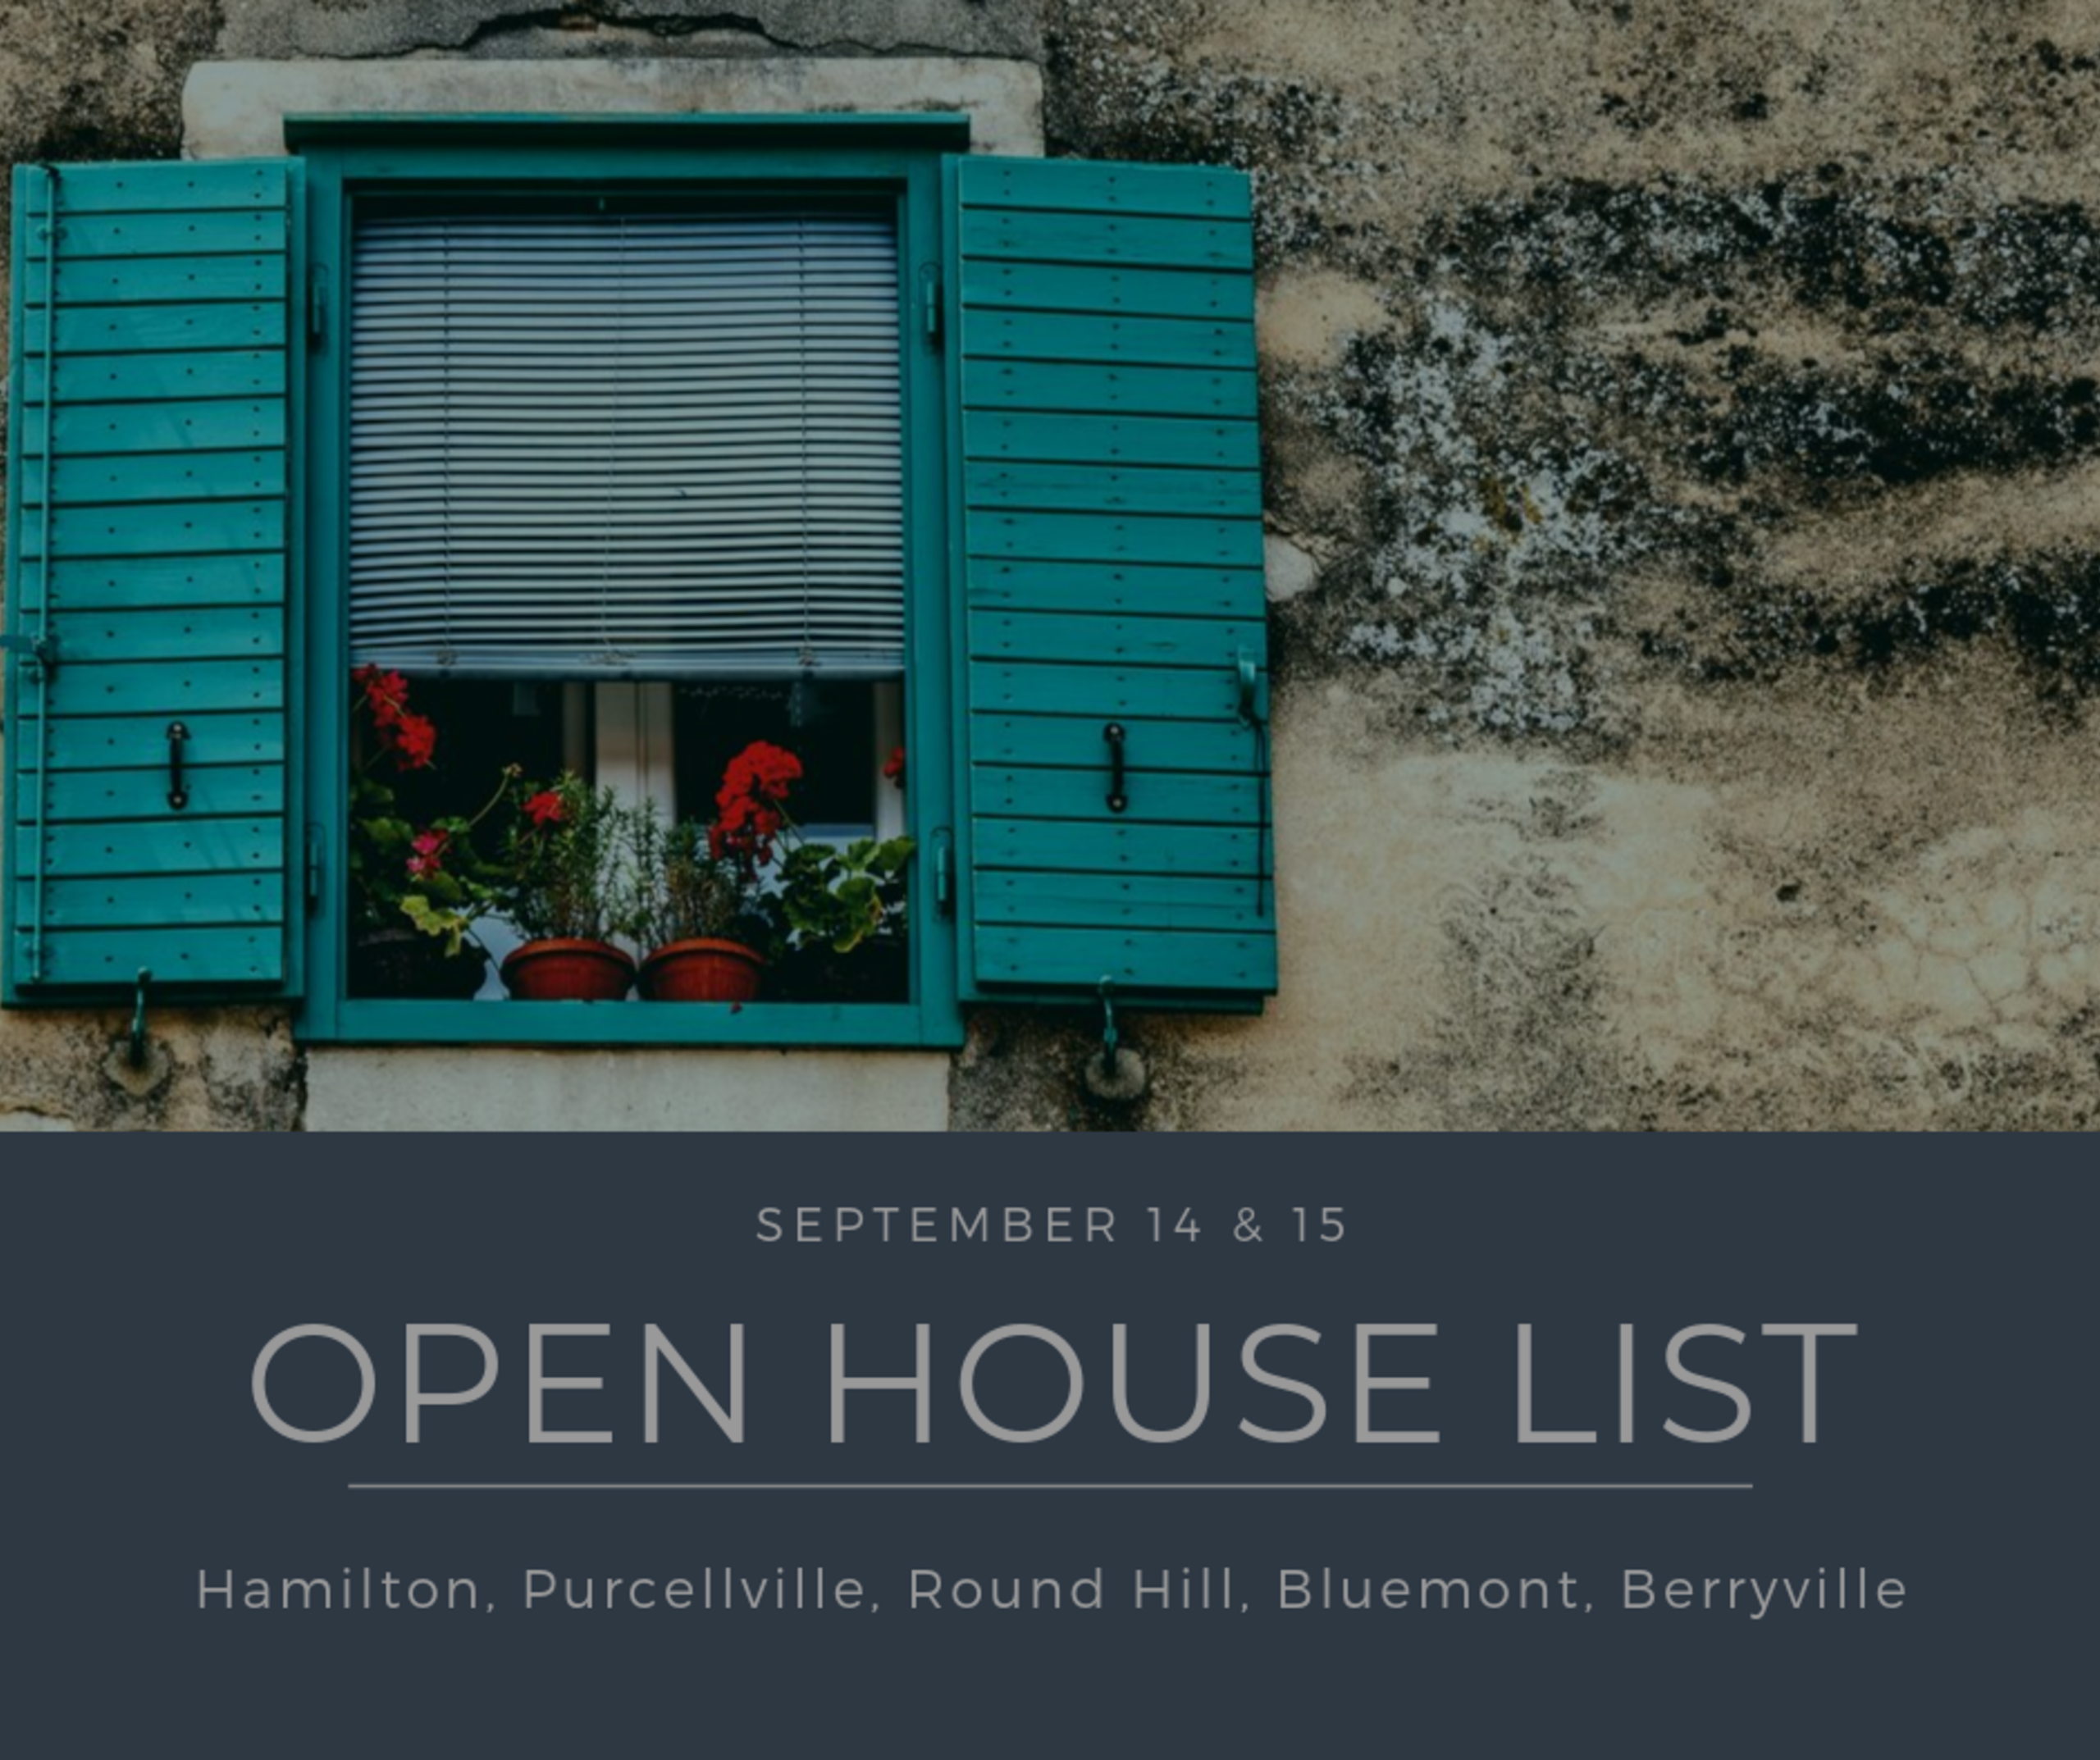 Open House List 9/14/19 – 9/15/19